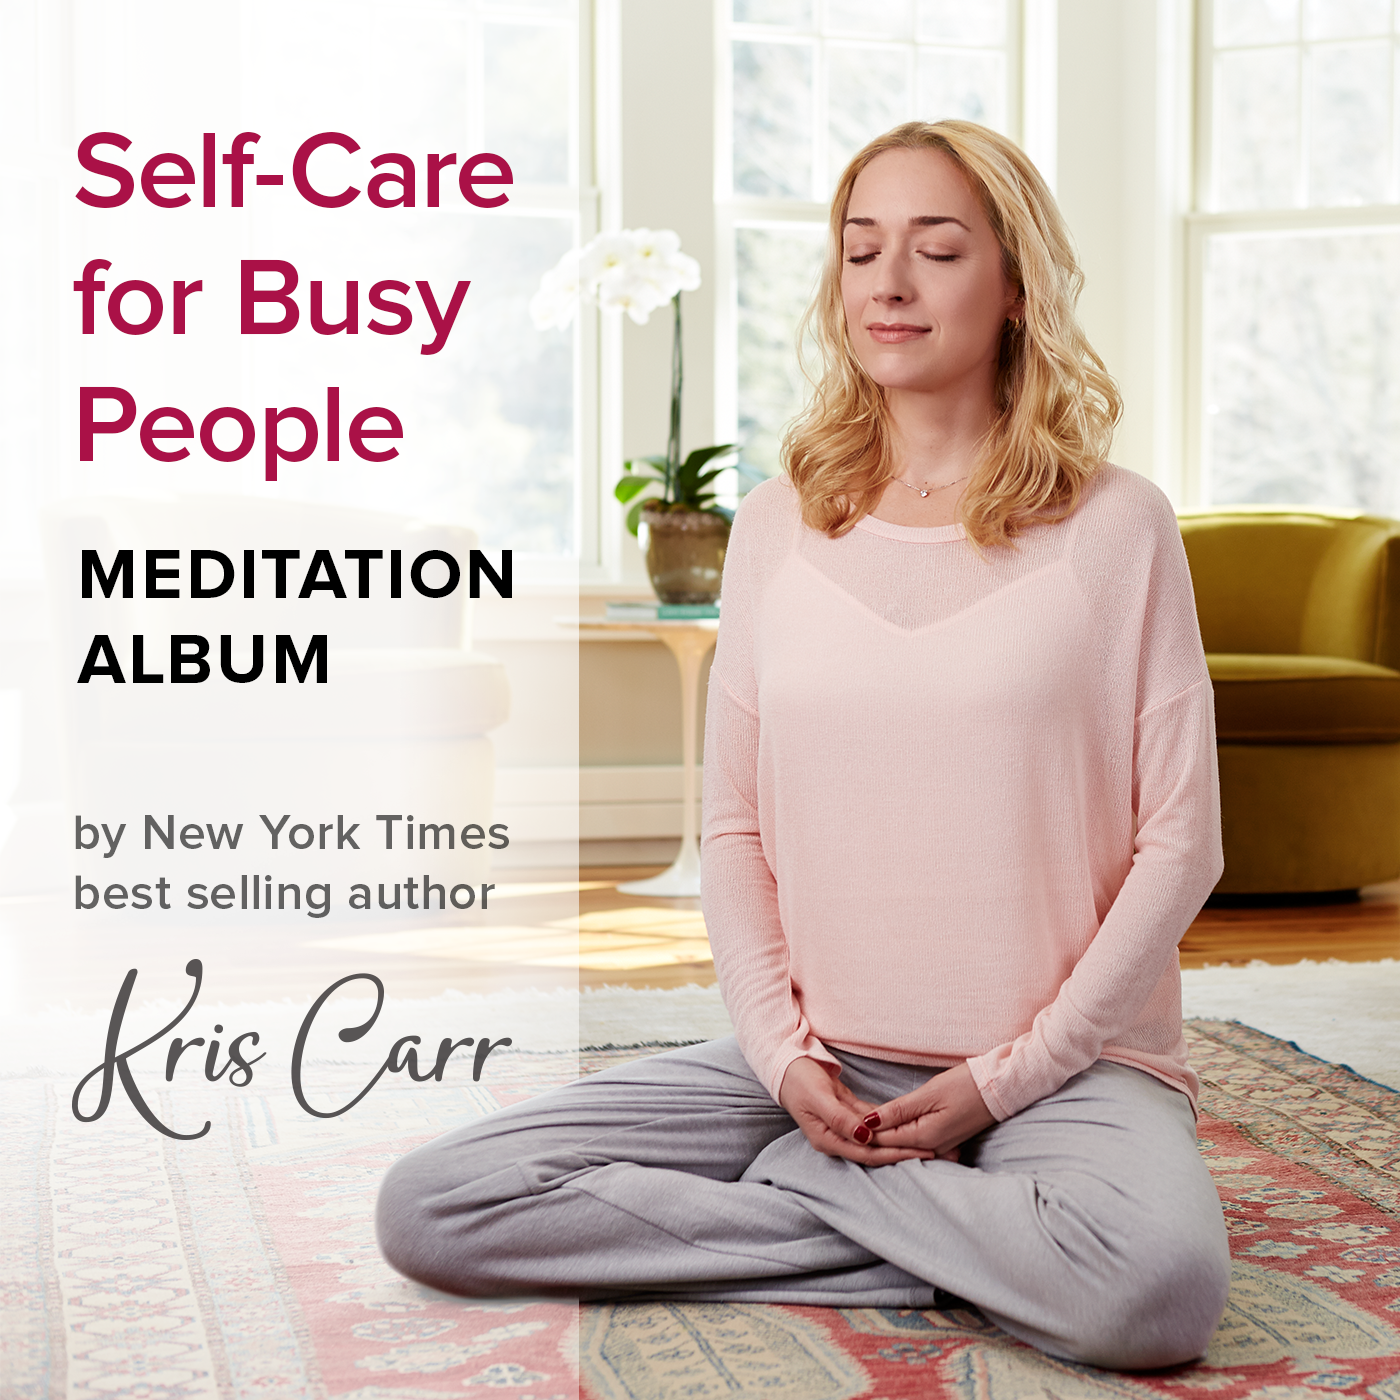 Self-Care for Busy People Meditation Album